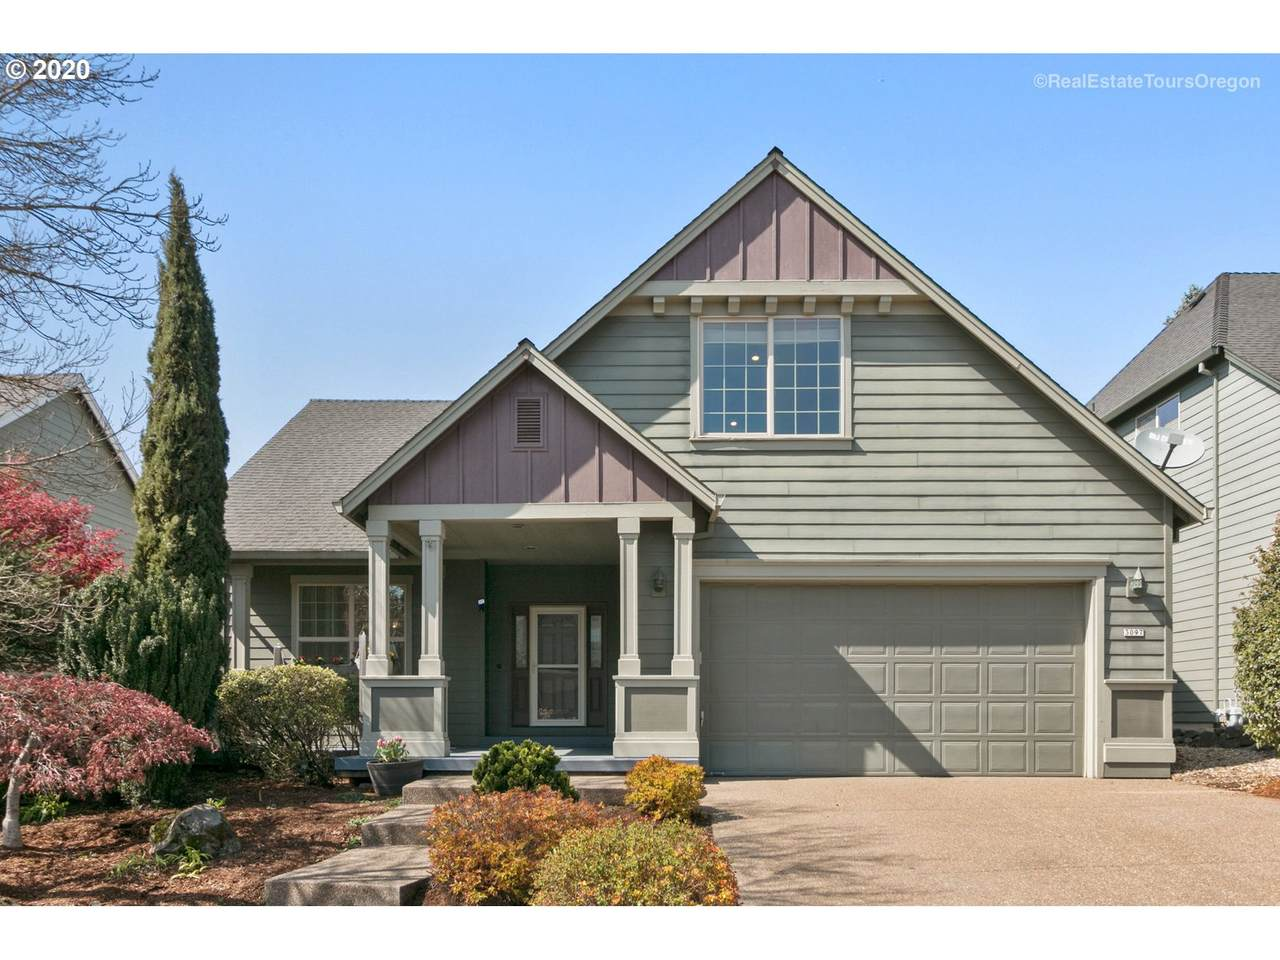 3097 Riesling Rd - Photo 1